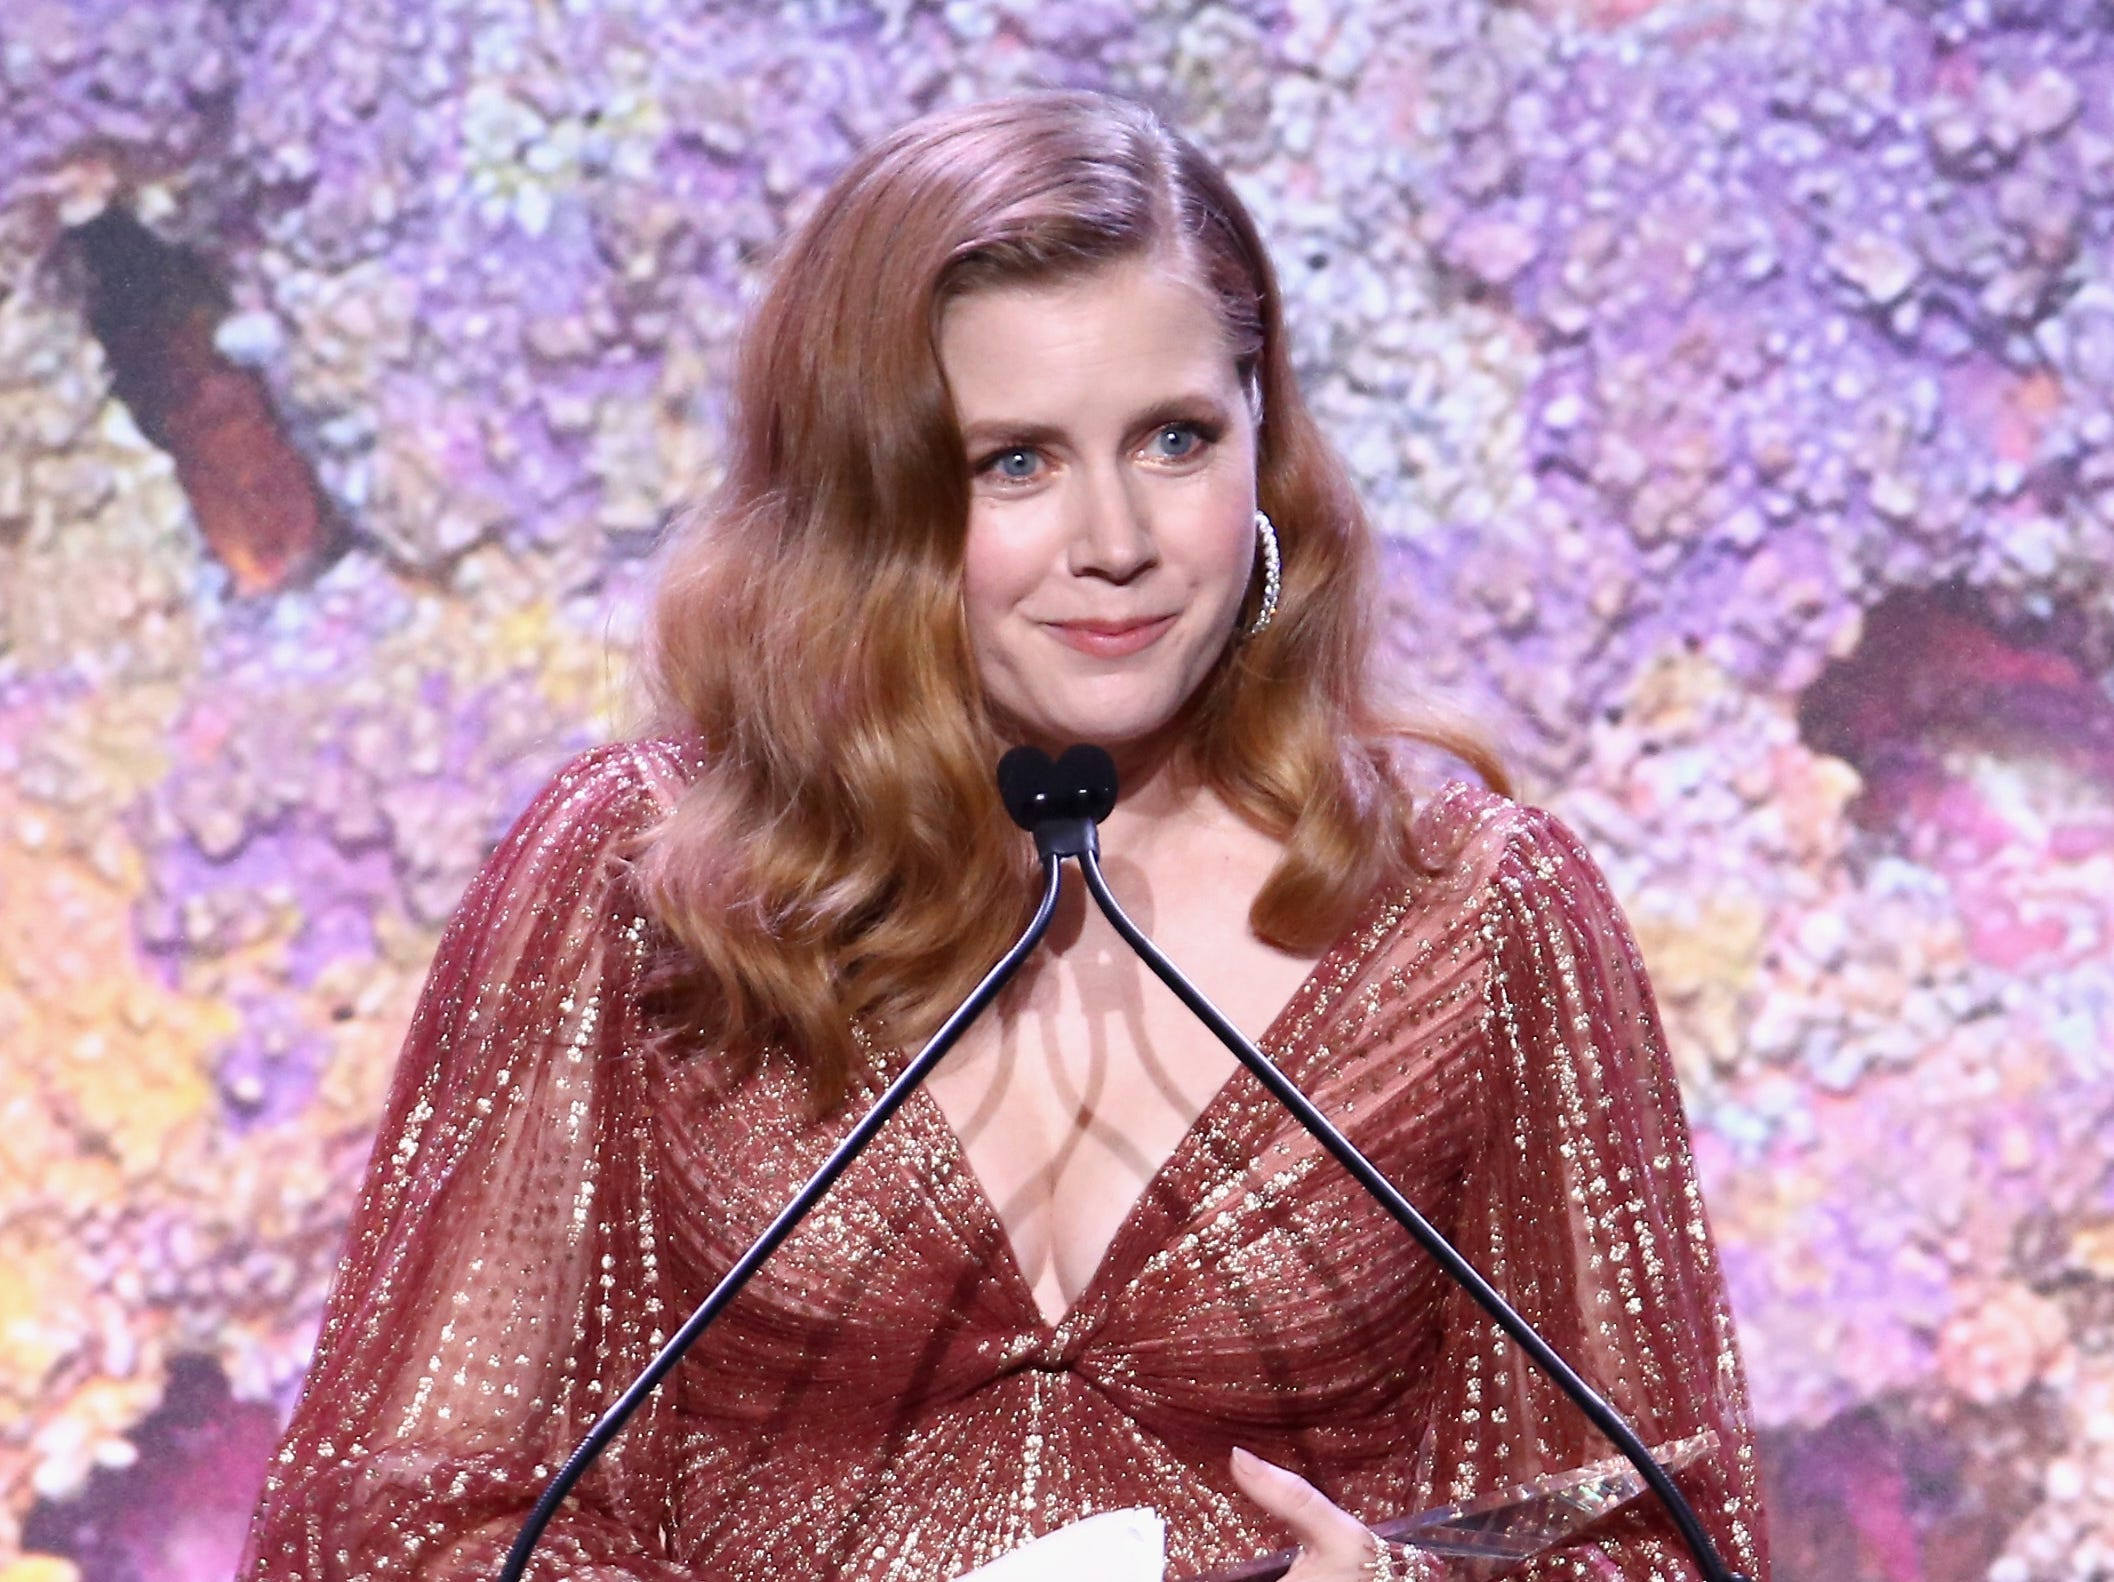 CULVER CITY, CA - NOVEMBER 10: Honoree Amy Adams speaks onstage at the 2018 Baby2Baby Gala Presented by Paul Mitchell at 3LABS on November 10, 2018 in Culver City, California.  (Photo by Tommaso Boddi/Getty Images for Baby2Baby) ORG XMIT: 775255853 ORIG FILE ID: 1060110262